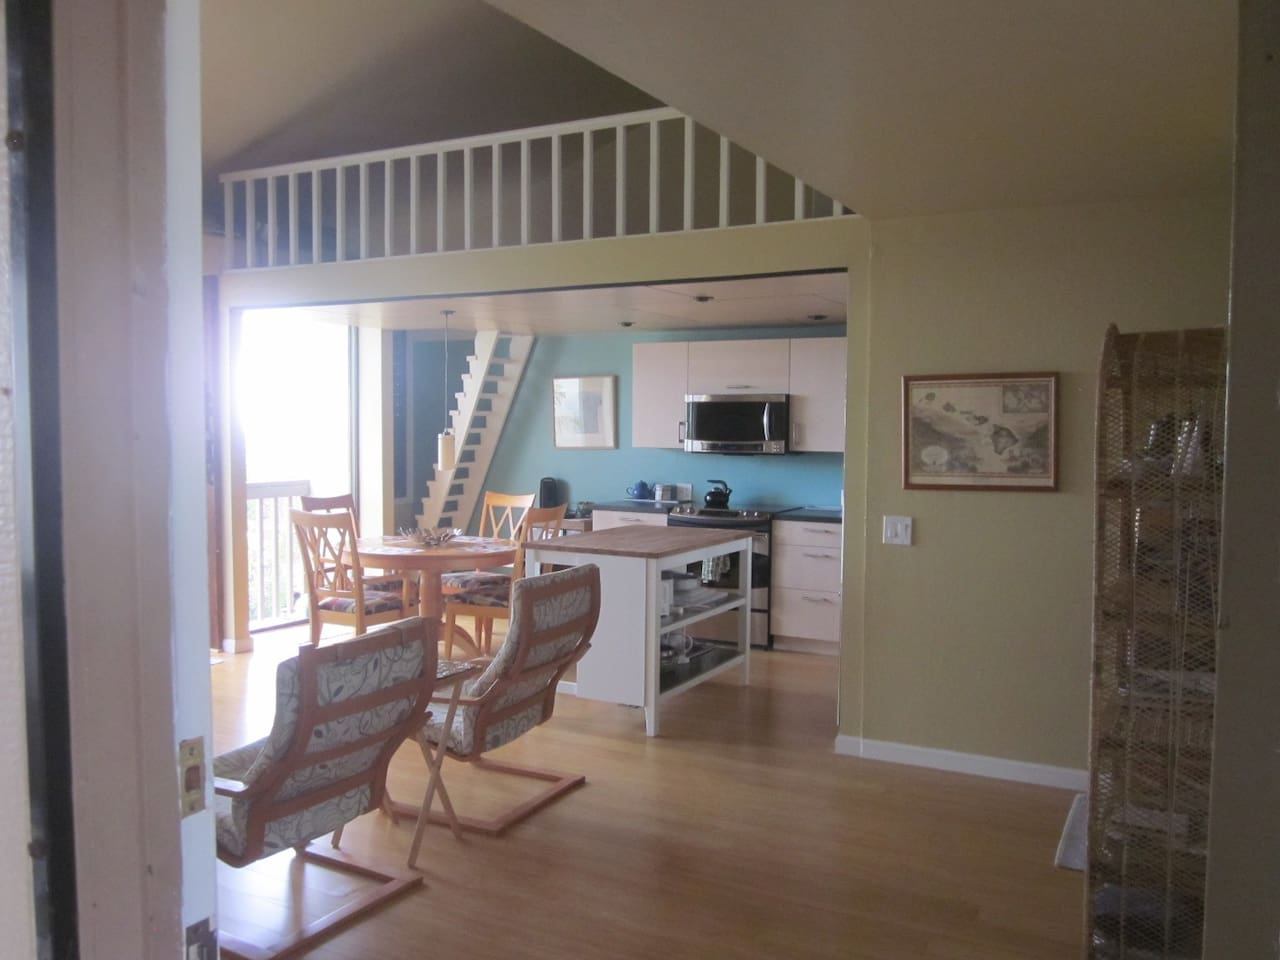 View from front door looking into kitchen with loft above (note ladder-like stairs). We have new furniture - click thru to see all!